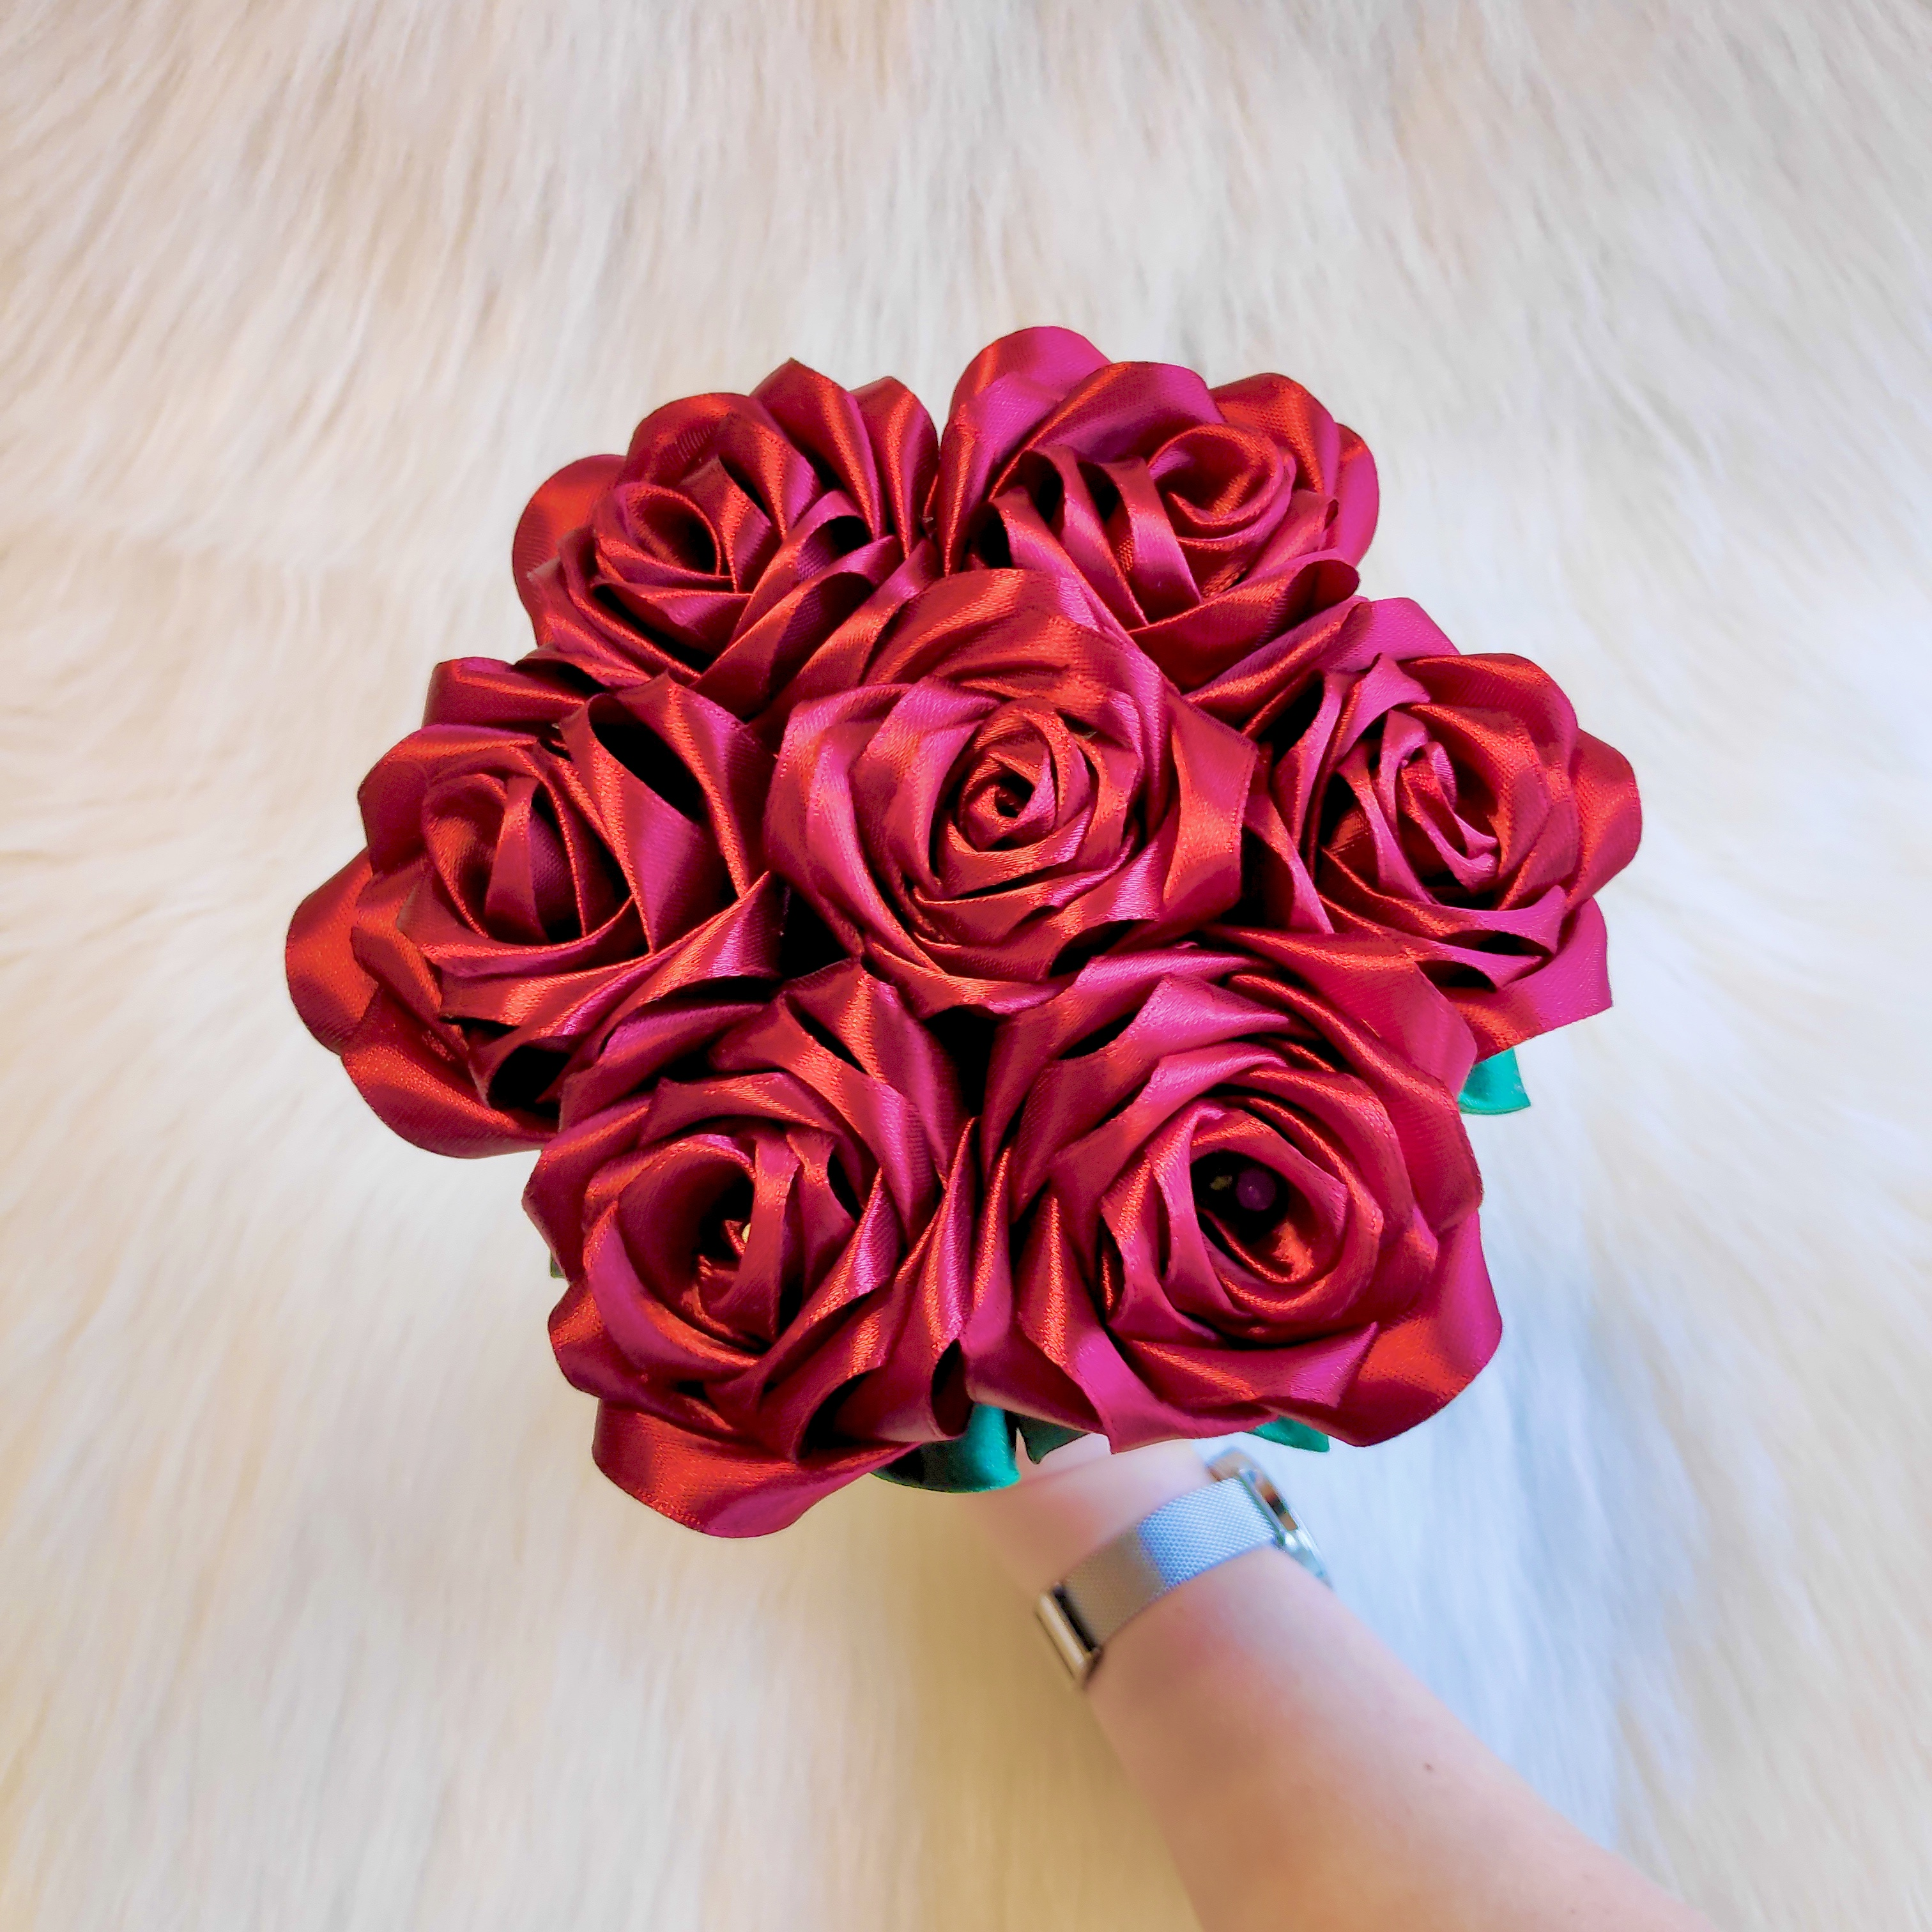 7 Rose Bouquet